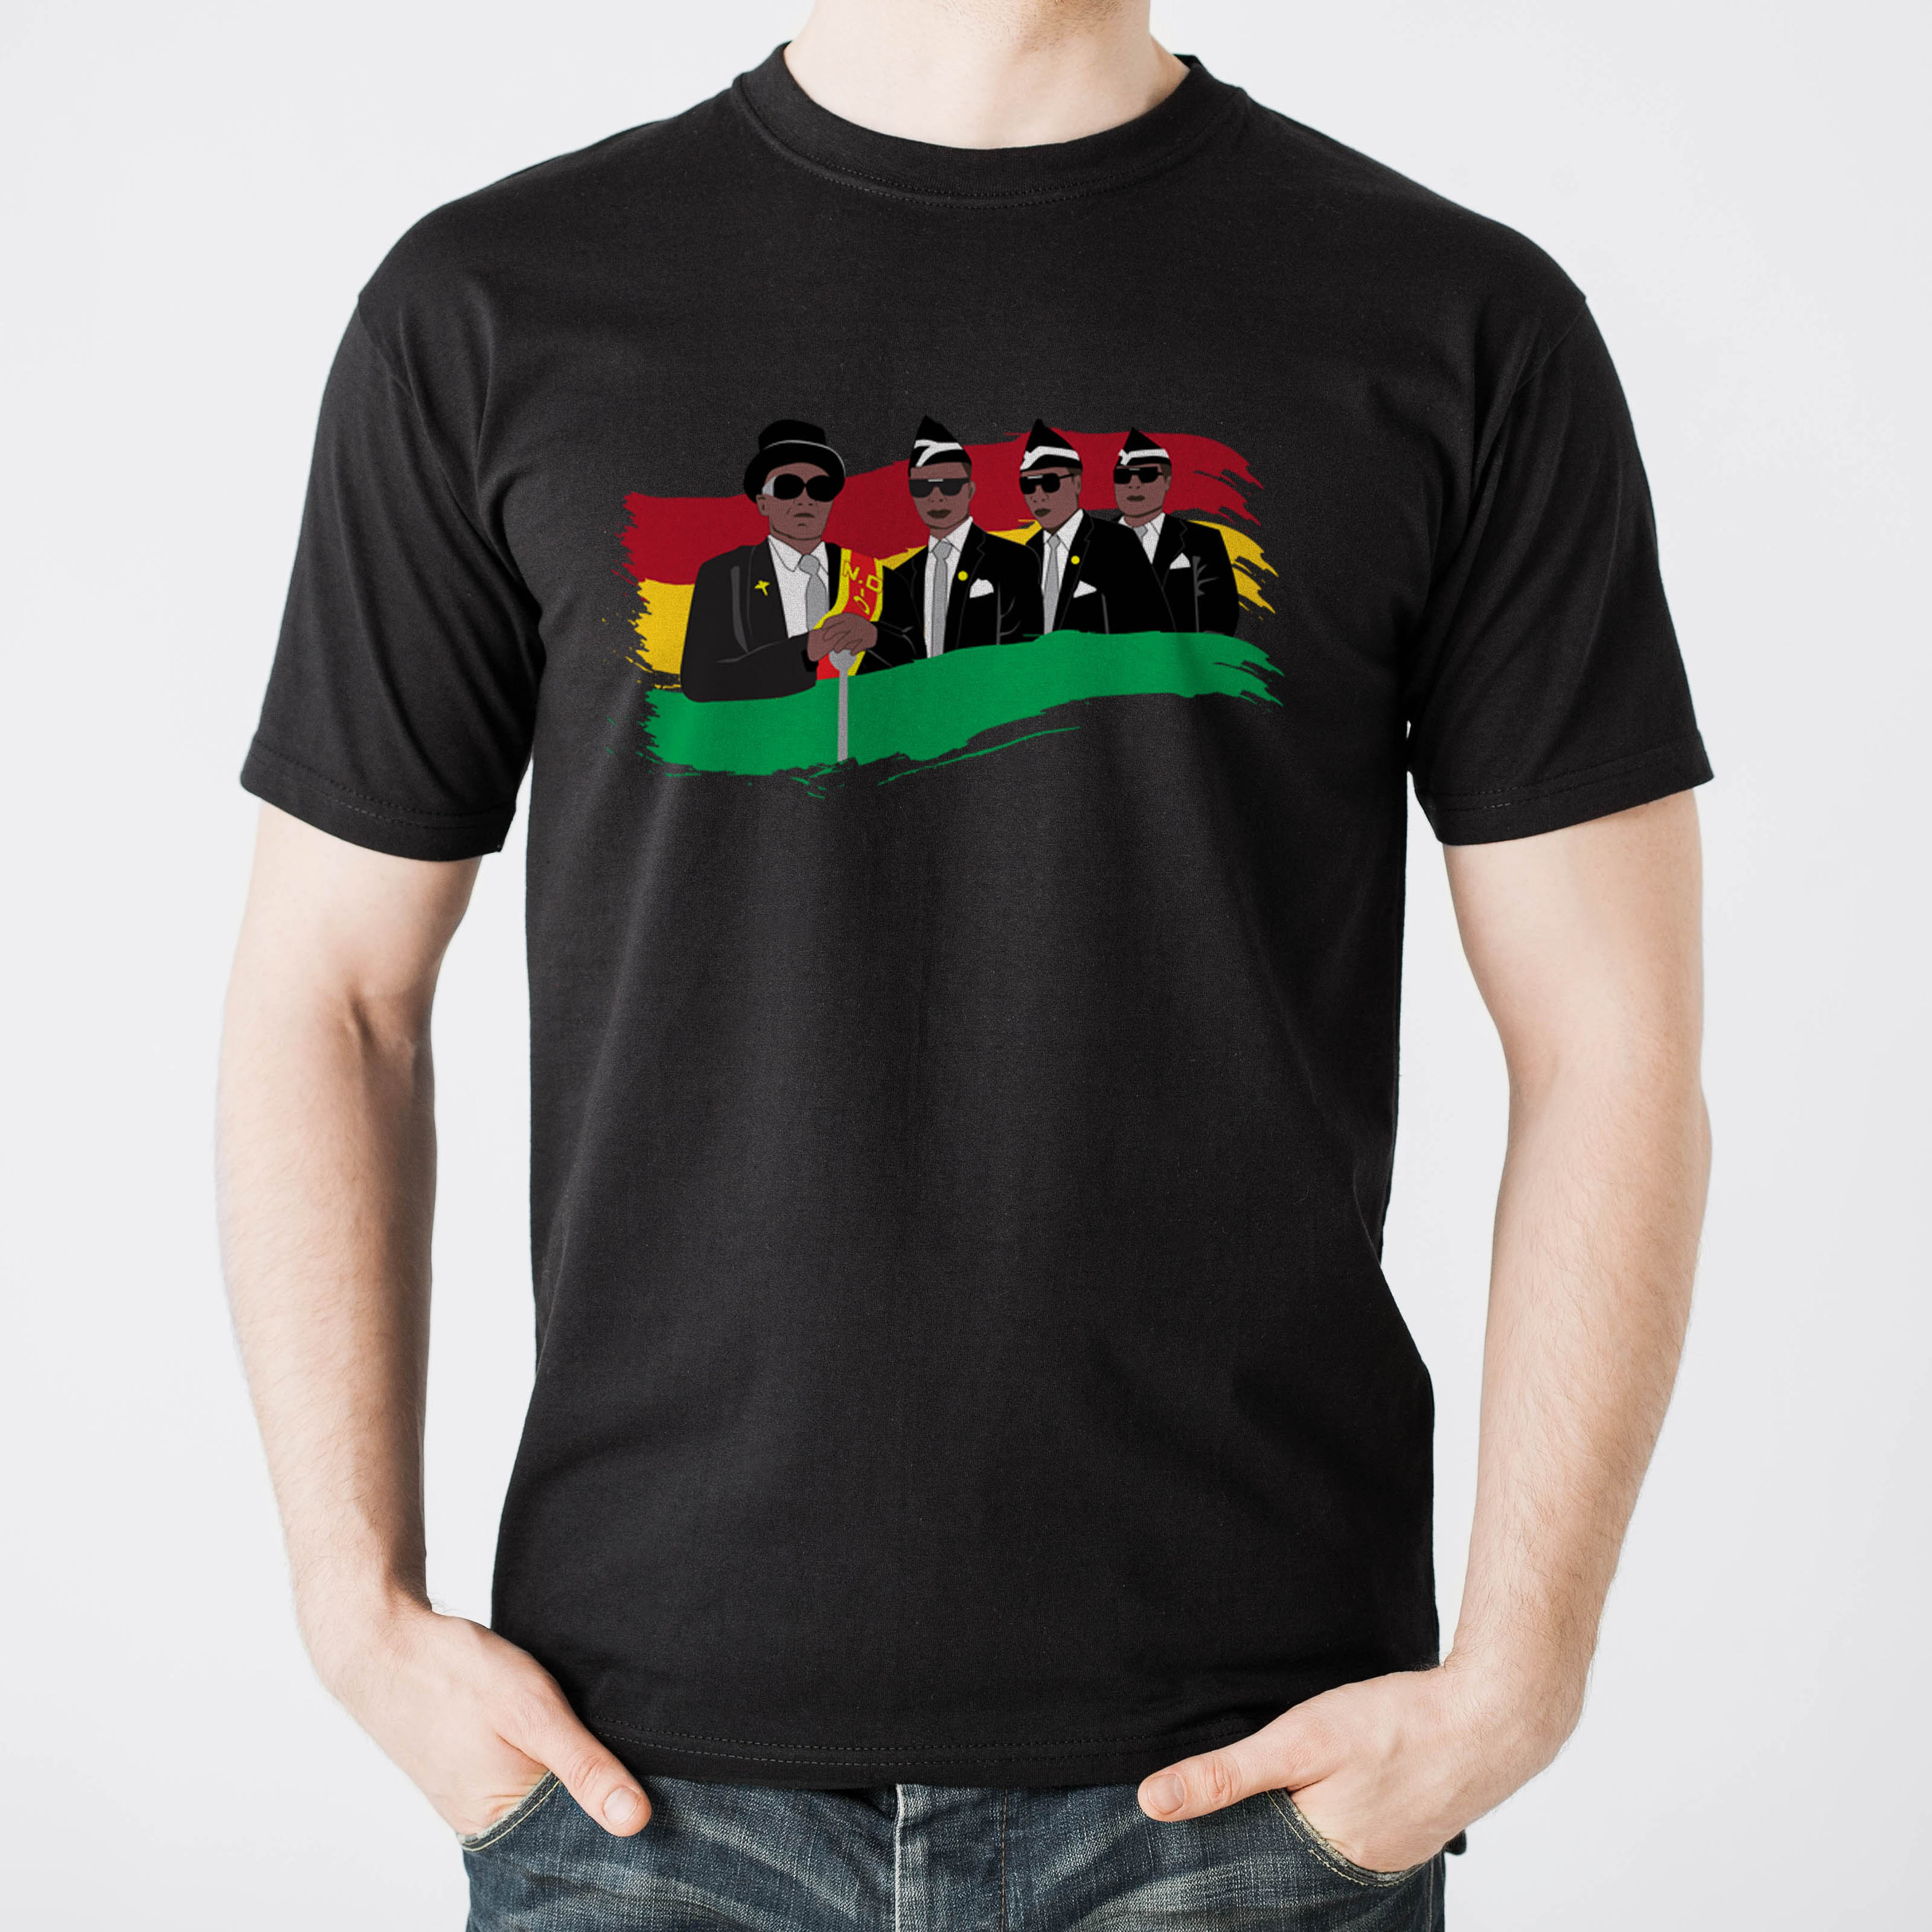 T shirt fruit of the loom NERA UNISEX mezza manica